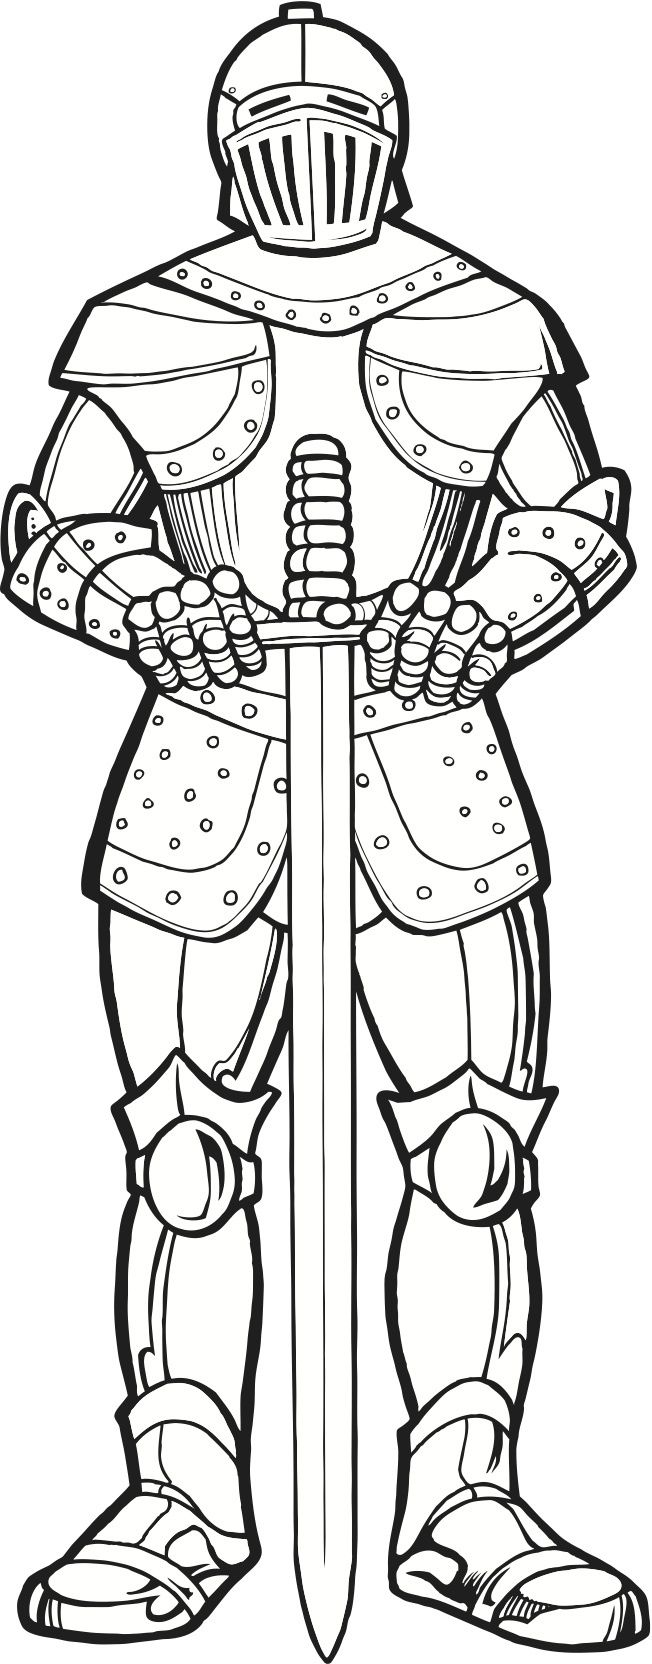 Free Coloring Pages Knights : Fd e de faa aaa a f knights coloring pages